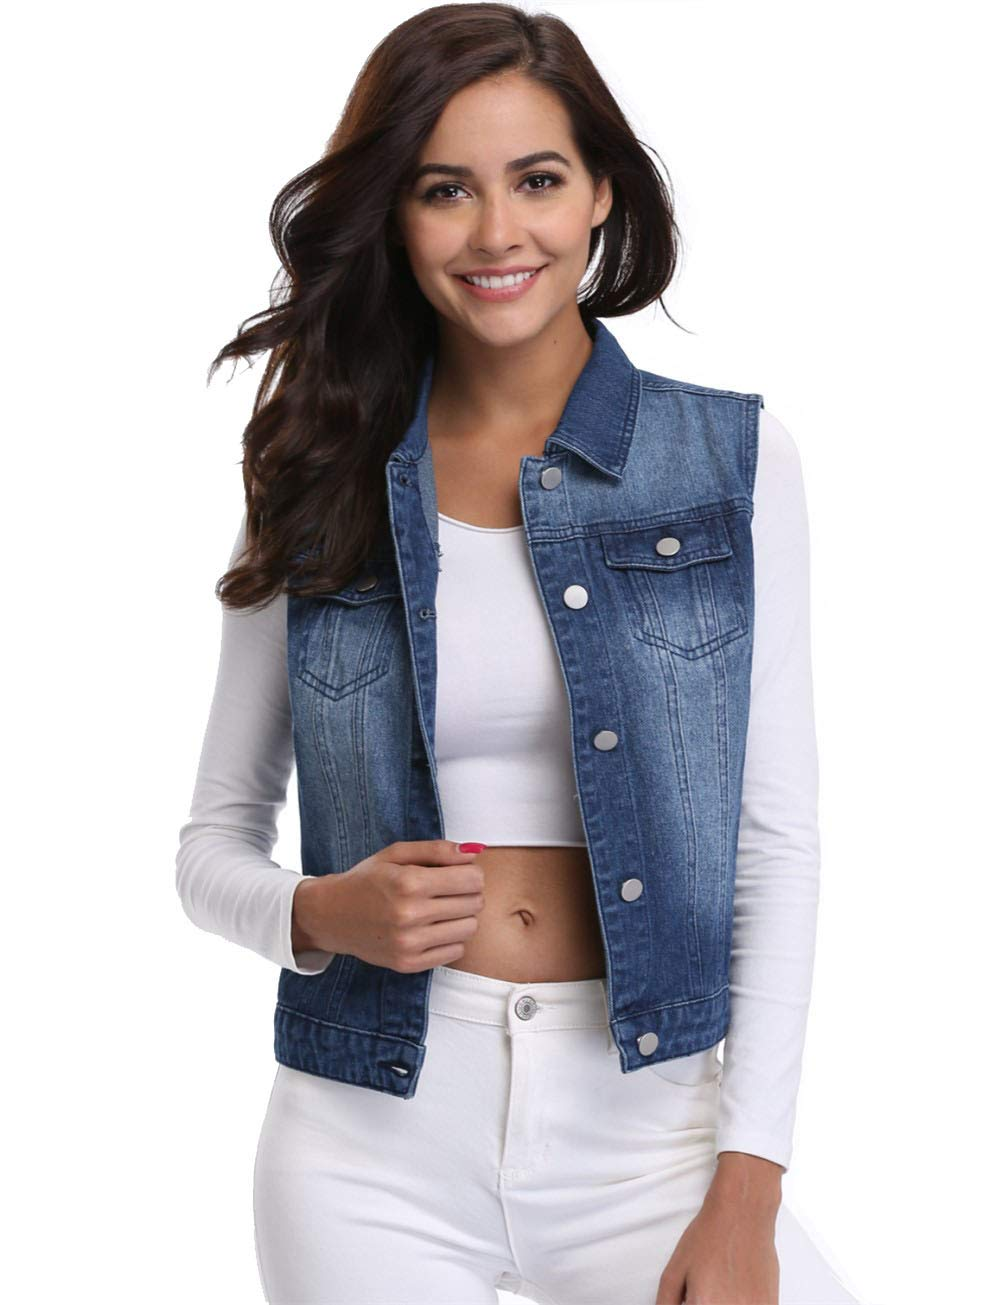 MISS MOLY Jean Vest for Women Button Down Sleeveless Denim Jackets with Pockets